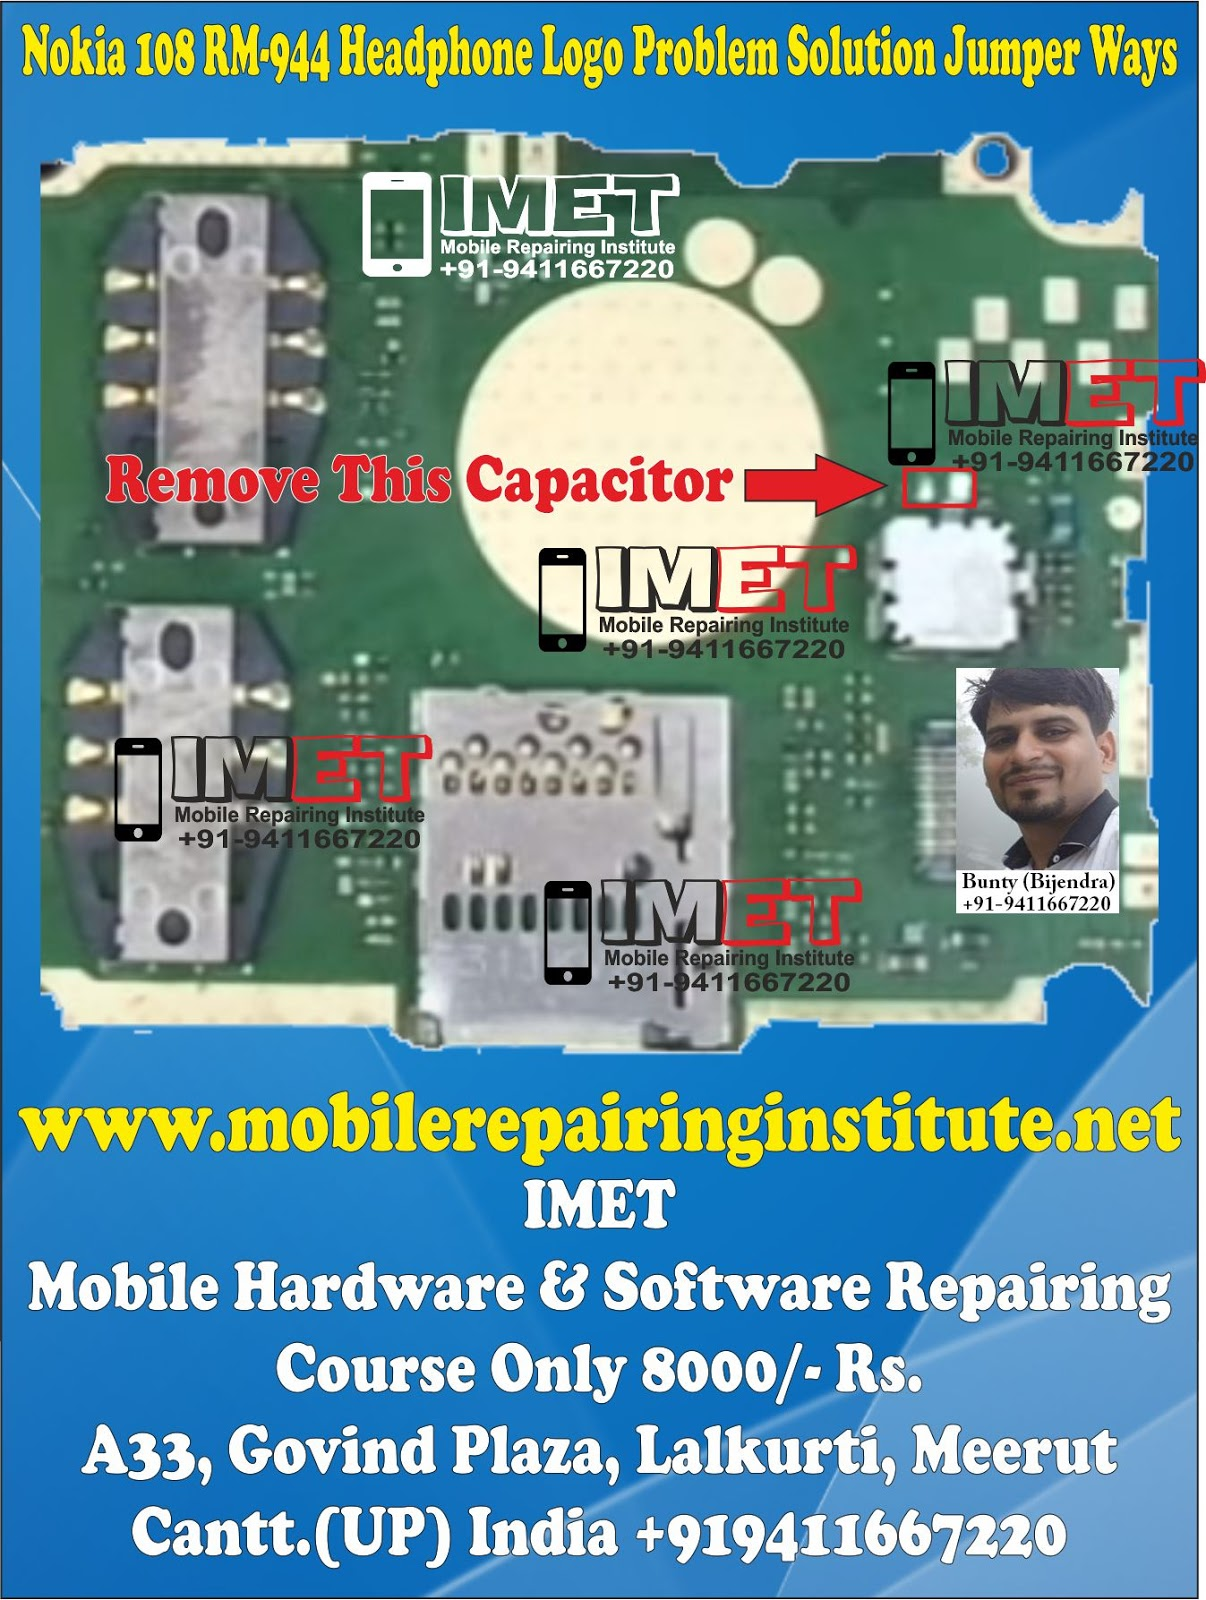 Nokia 108 RM-944 Headphone Logo Problem Solution Jumper Ways